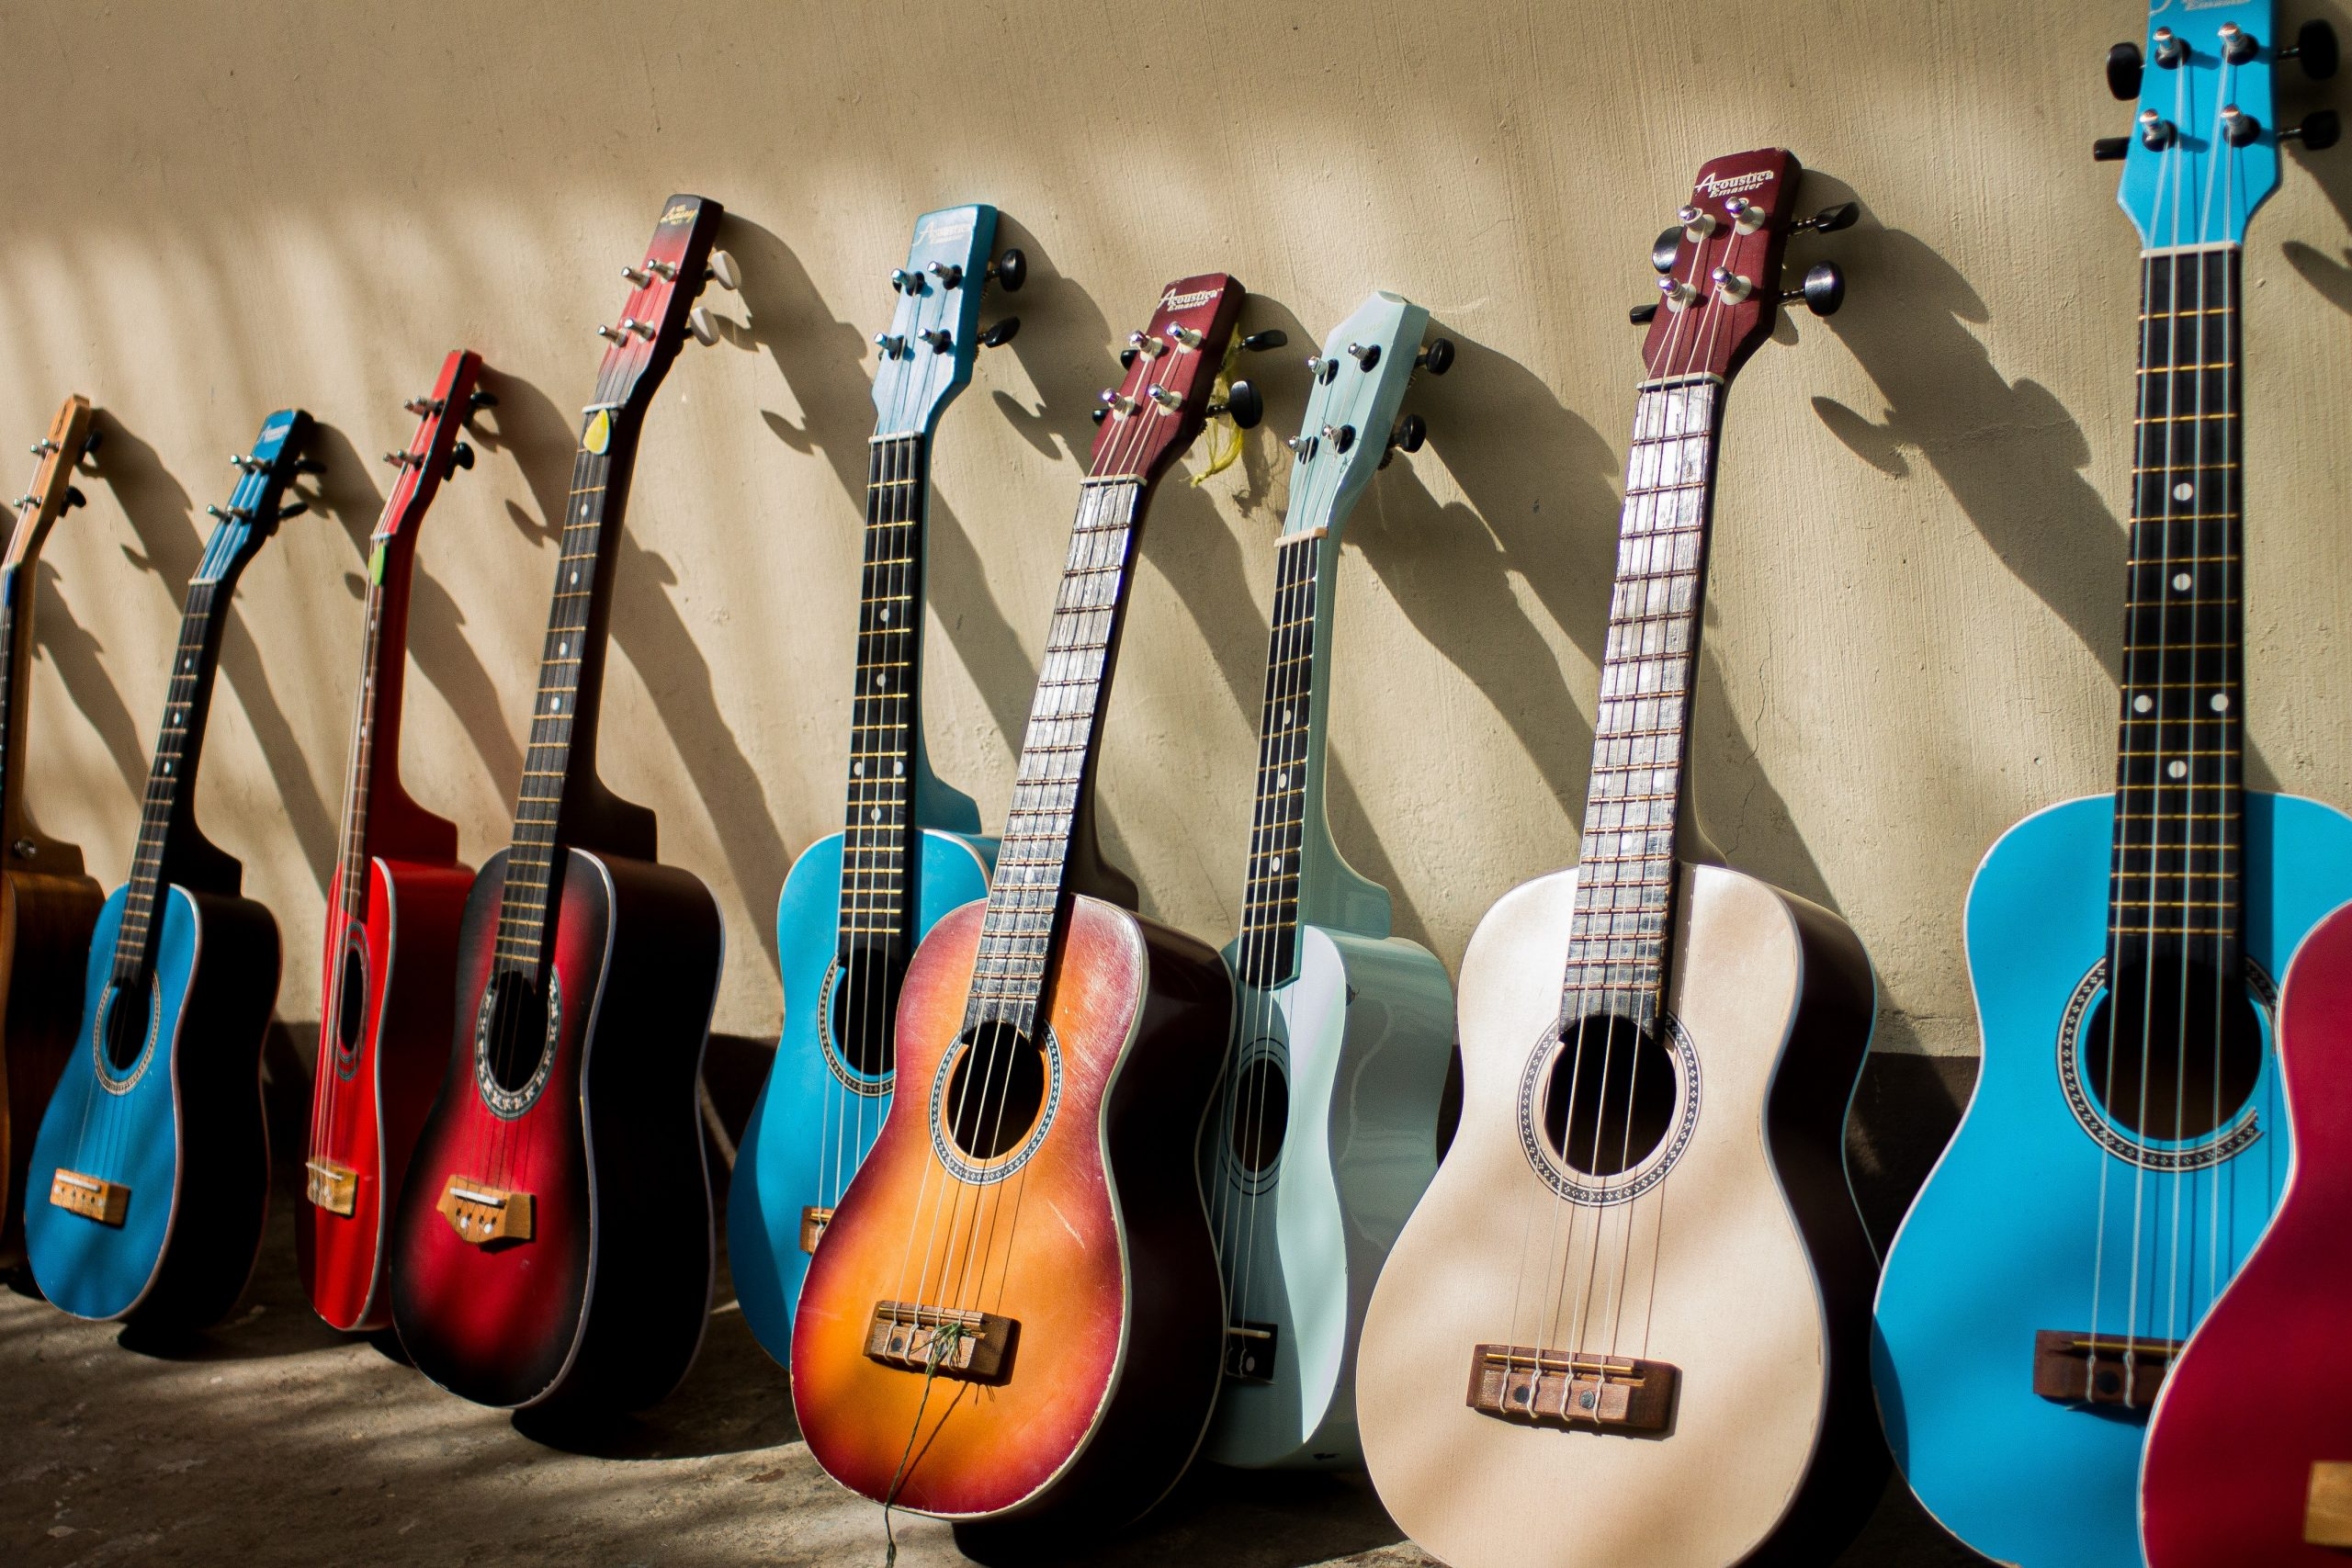 different guitars leaning against the wall